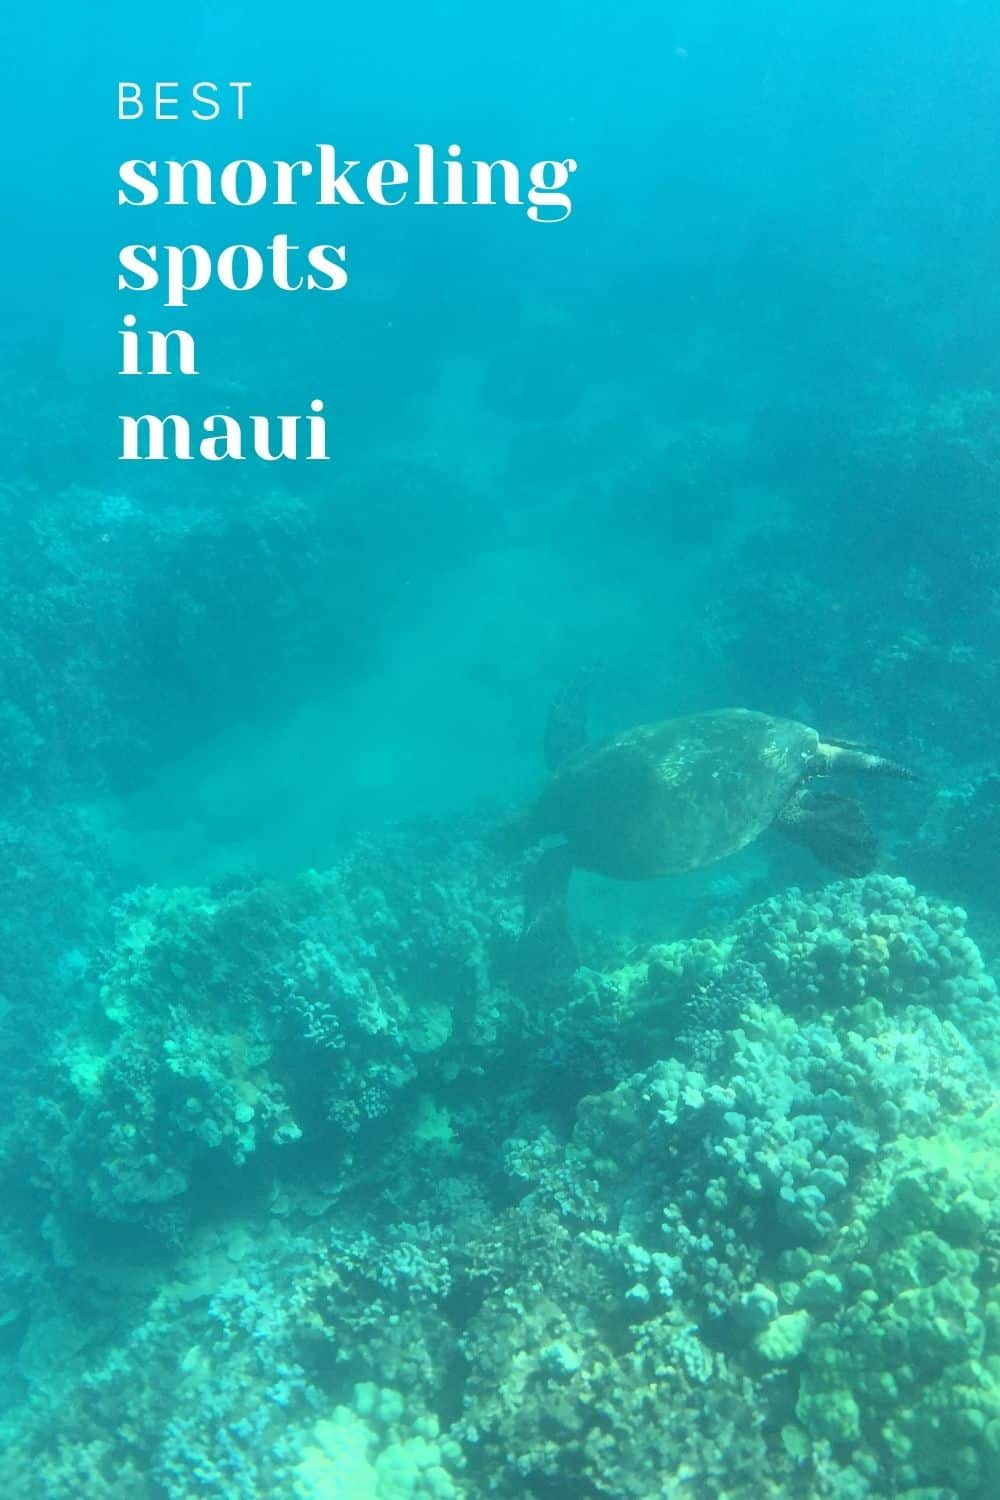 Best Snorkeling in Maui - Self-Guided and Boat Tours [2021]